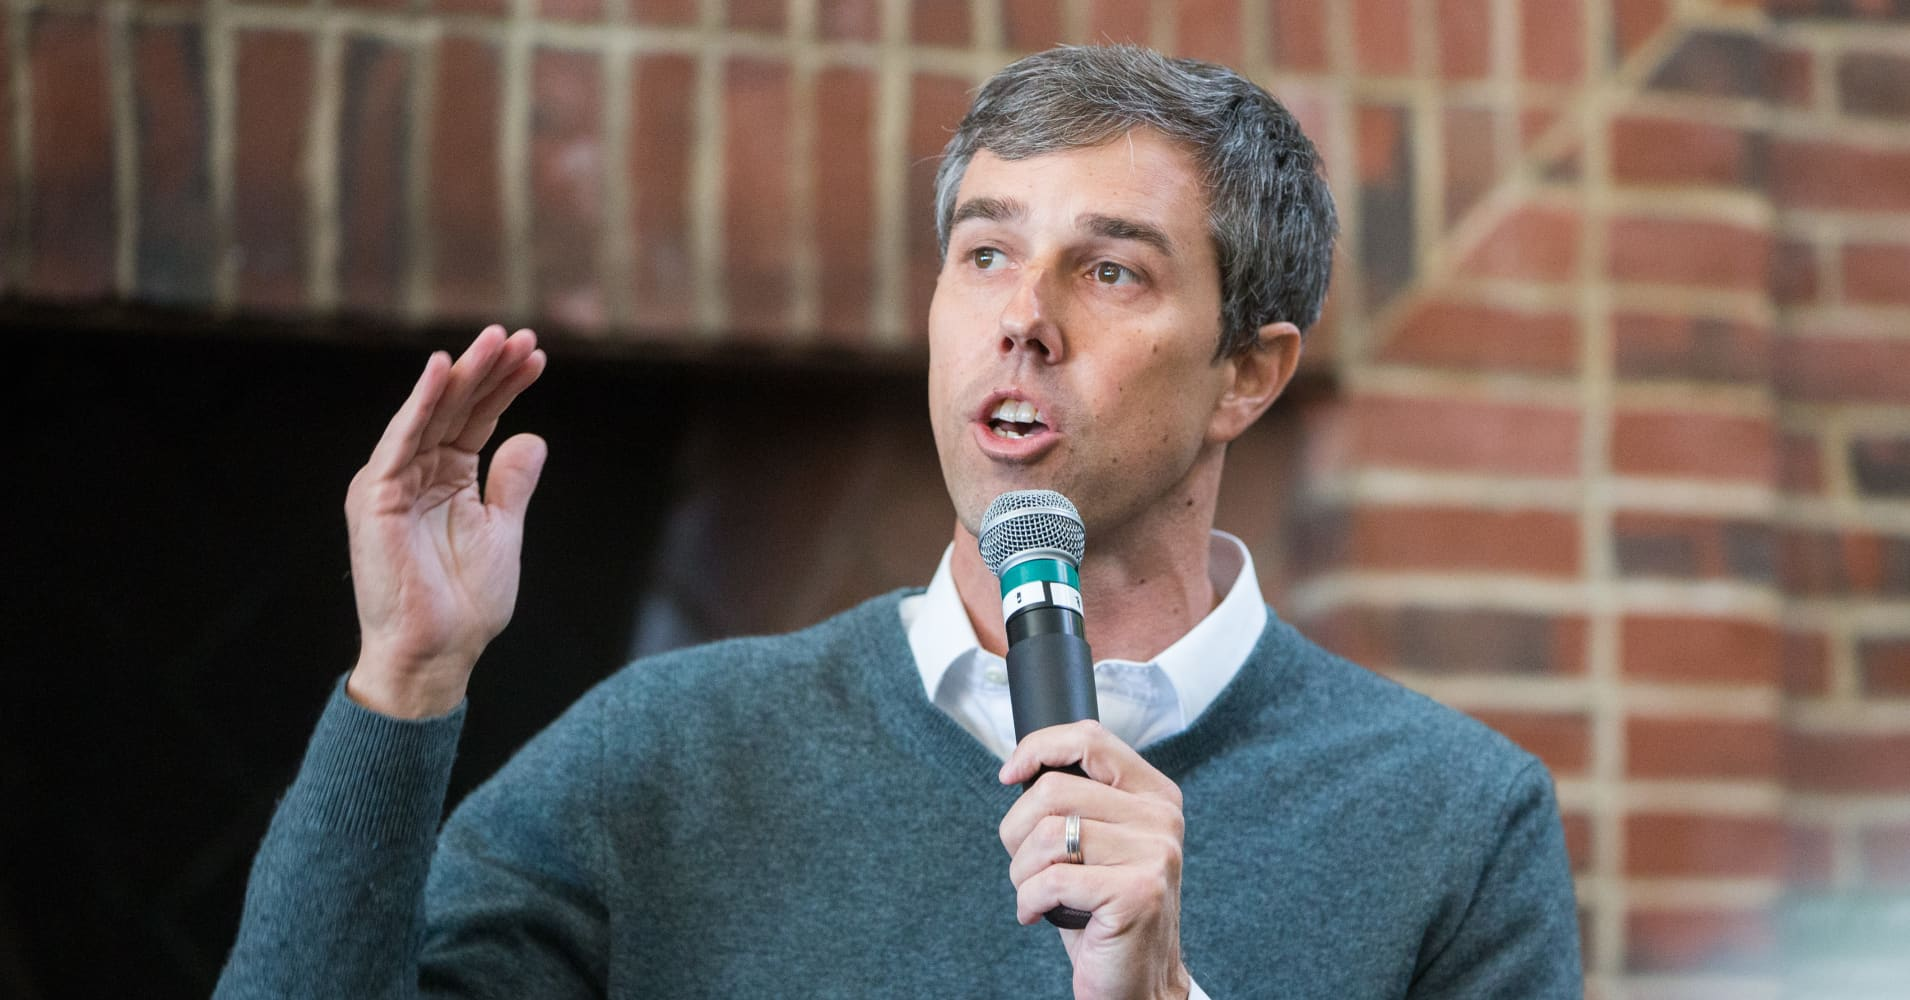 2020 hopeful Beto O'Rourke says he'd rather see Big Tech regulated than broken up